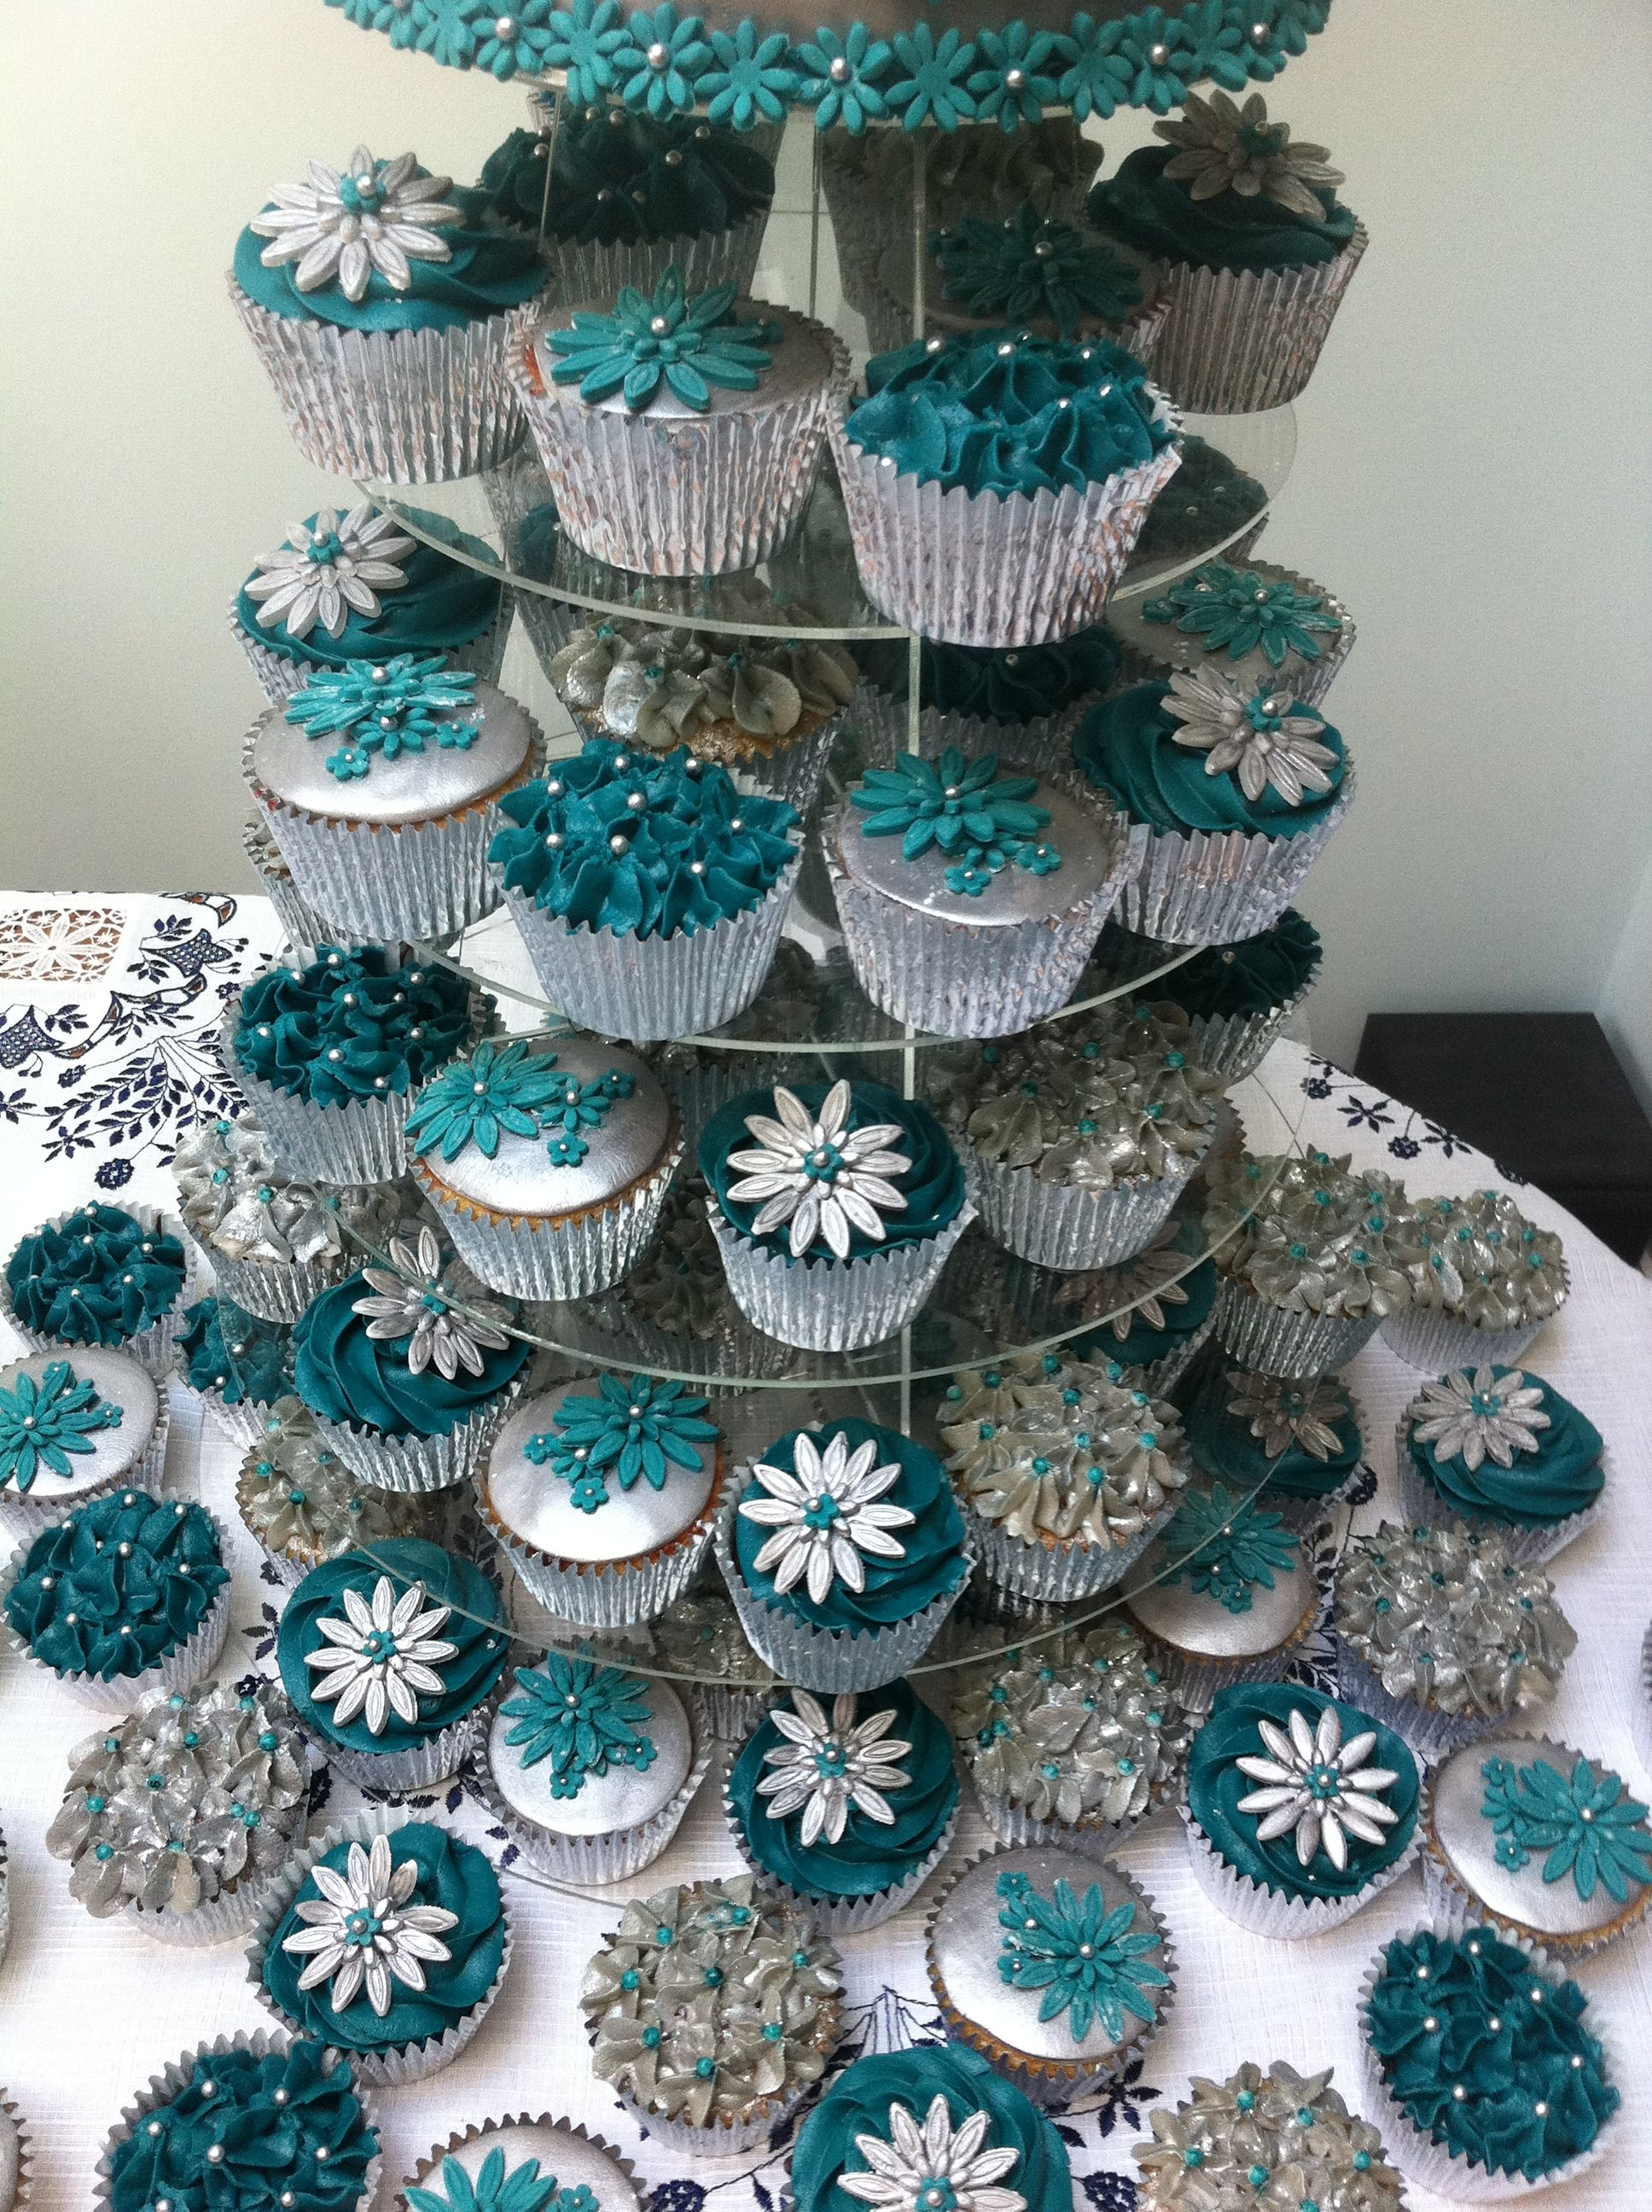 teal and silver wedding cake + 80 cupcakes | wedding | pinterest